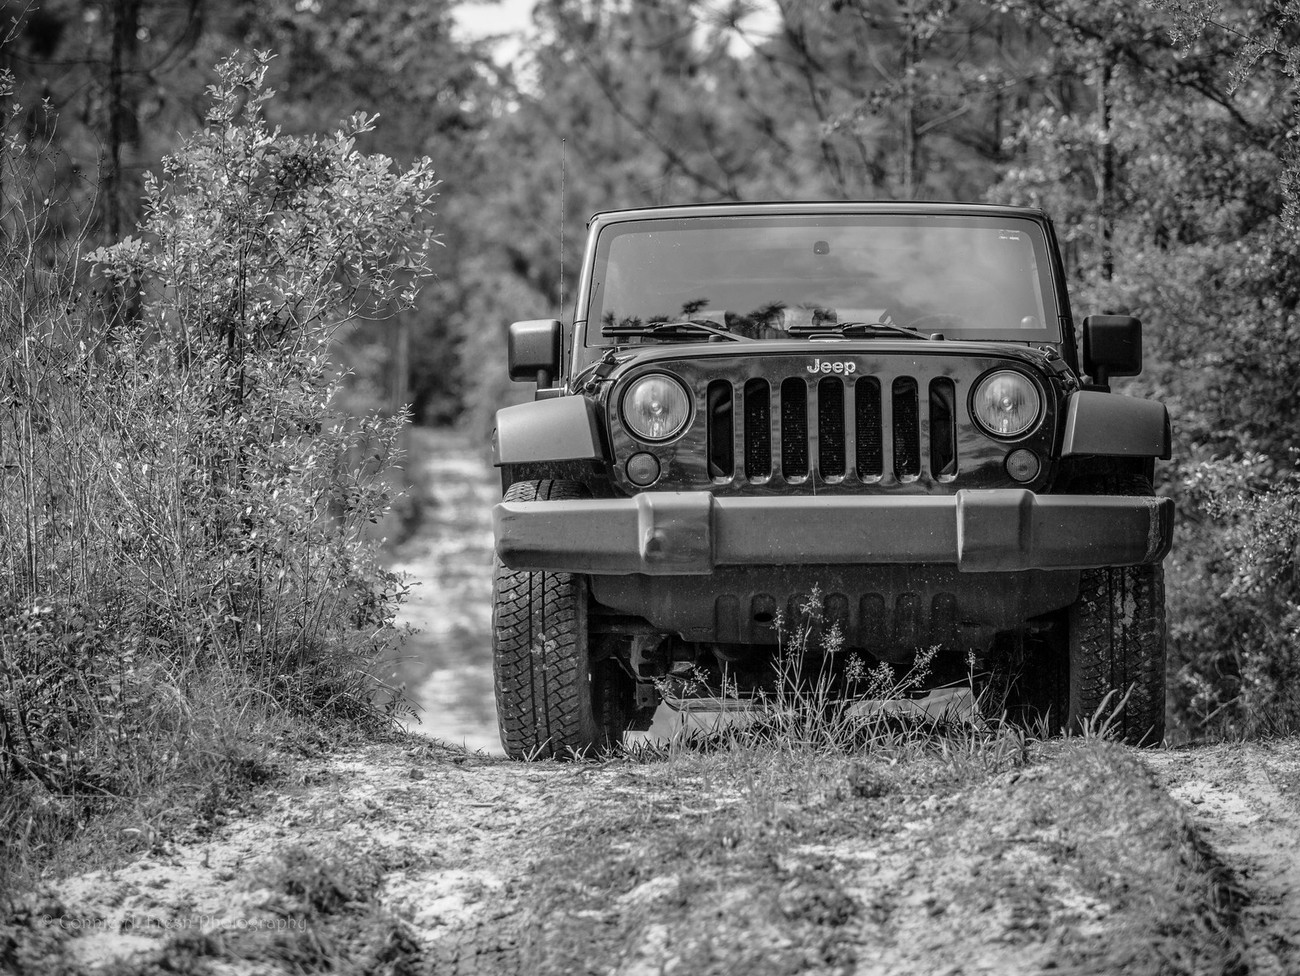 Jeep on a dirt road